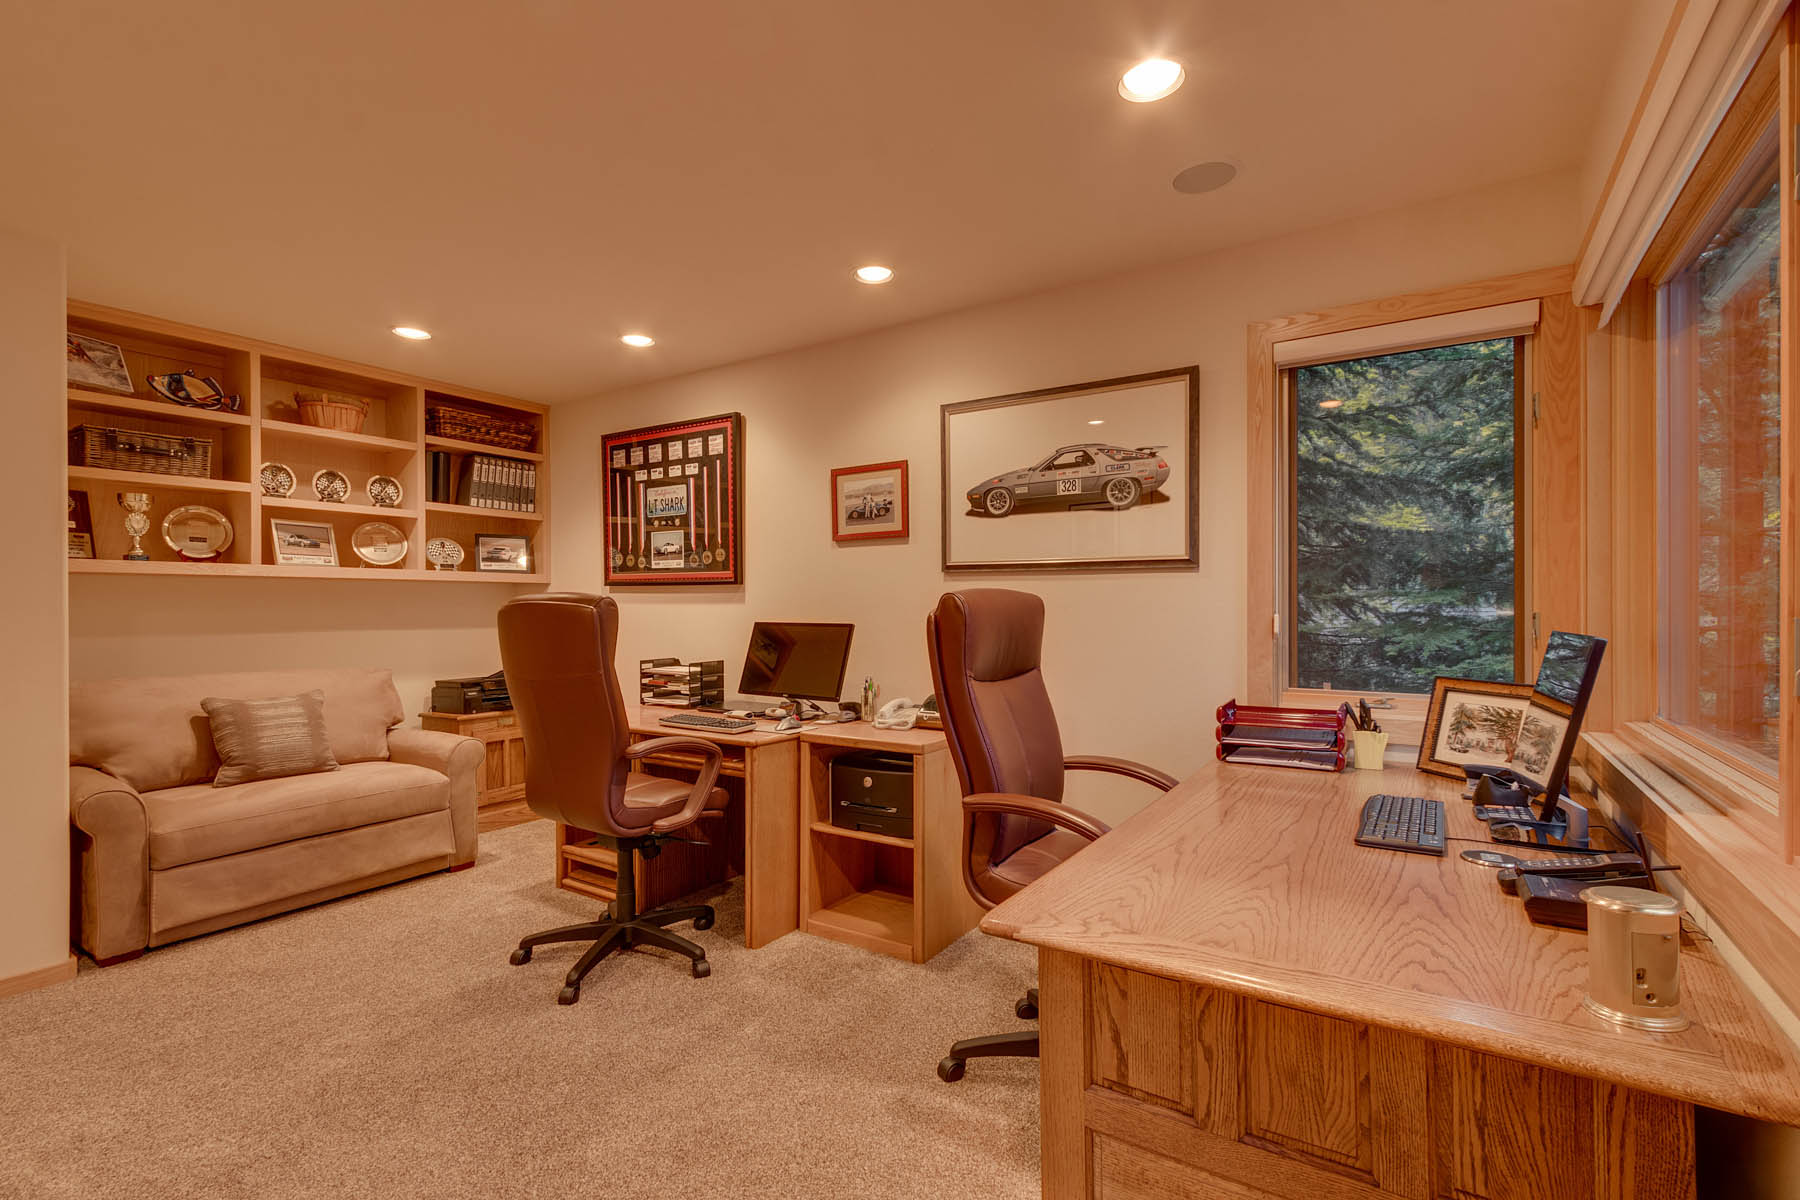 Additional photo for property listing at 1581 Zurs Court, Alpine Meadows, CA 1581 Zurs Court Alpine Meadows, California 96146 United States